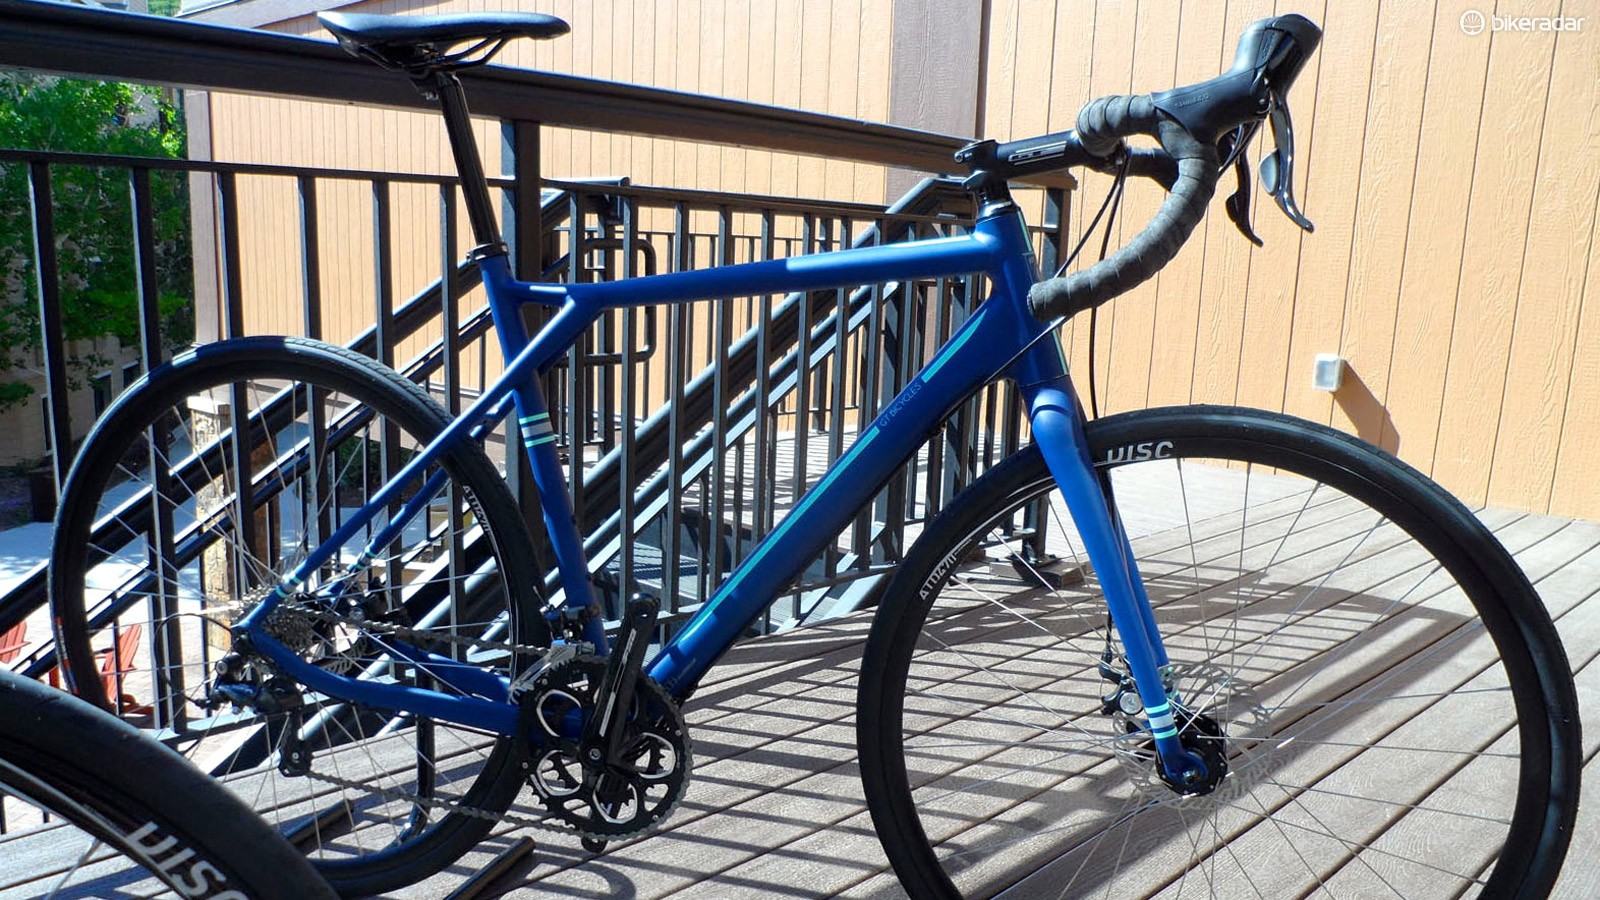 The base model $799 Claris model shares the same 1,350g alloy frame as the Alloy X